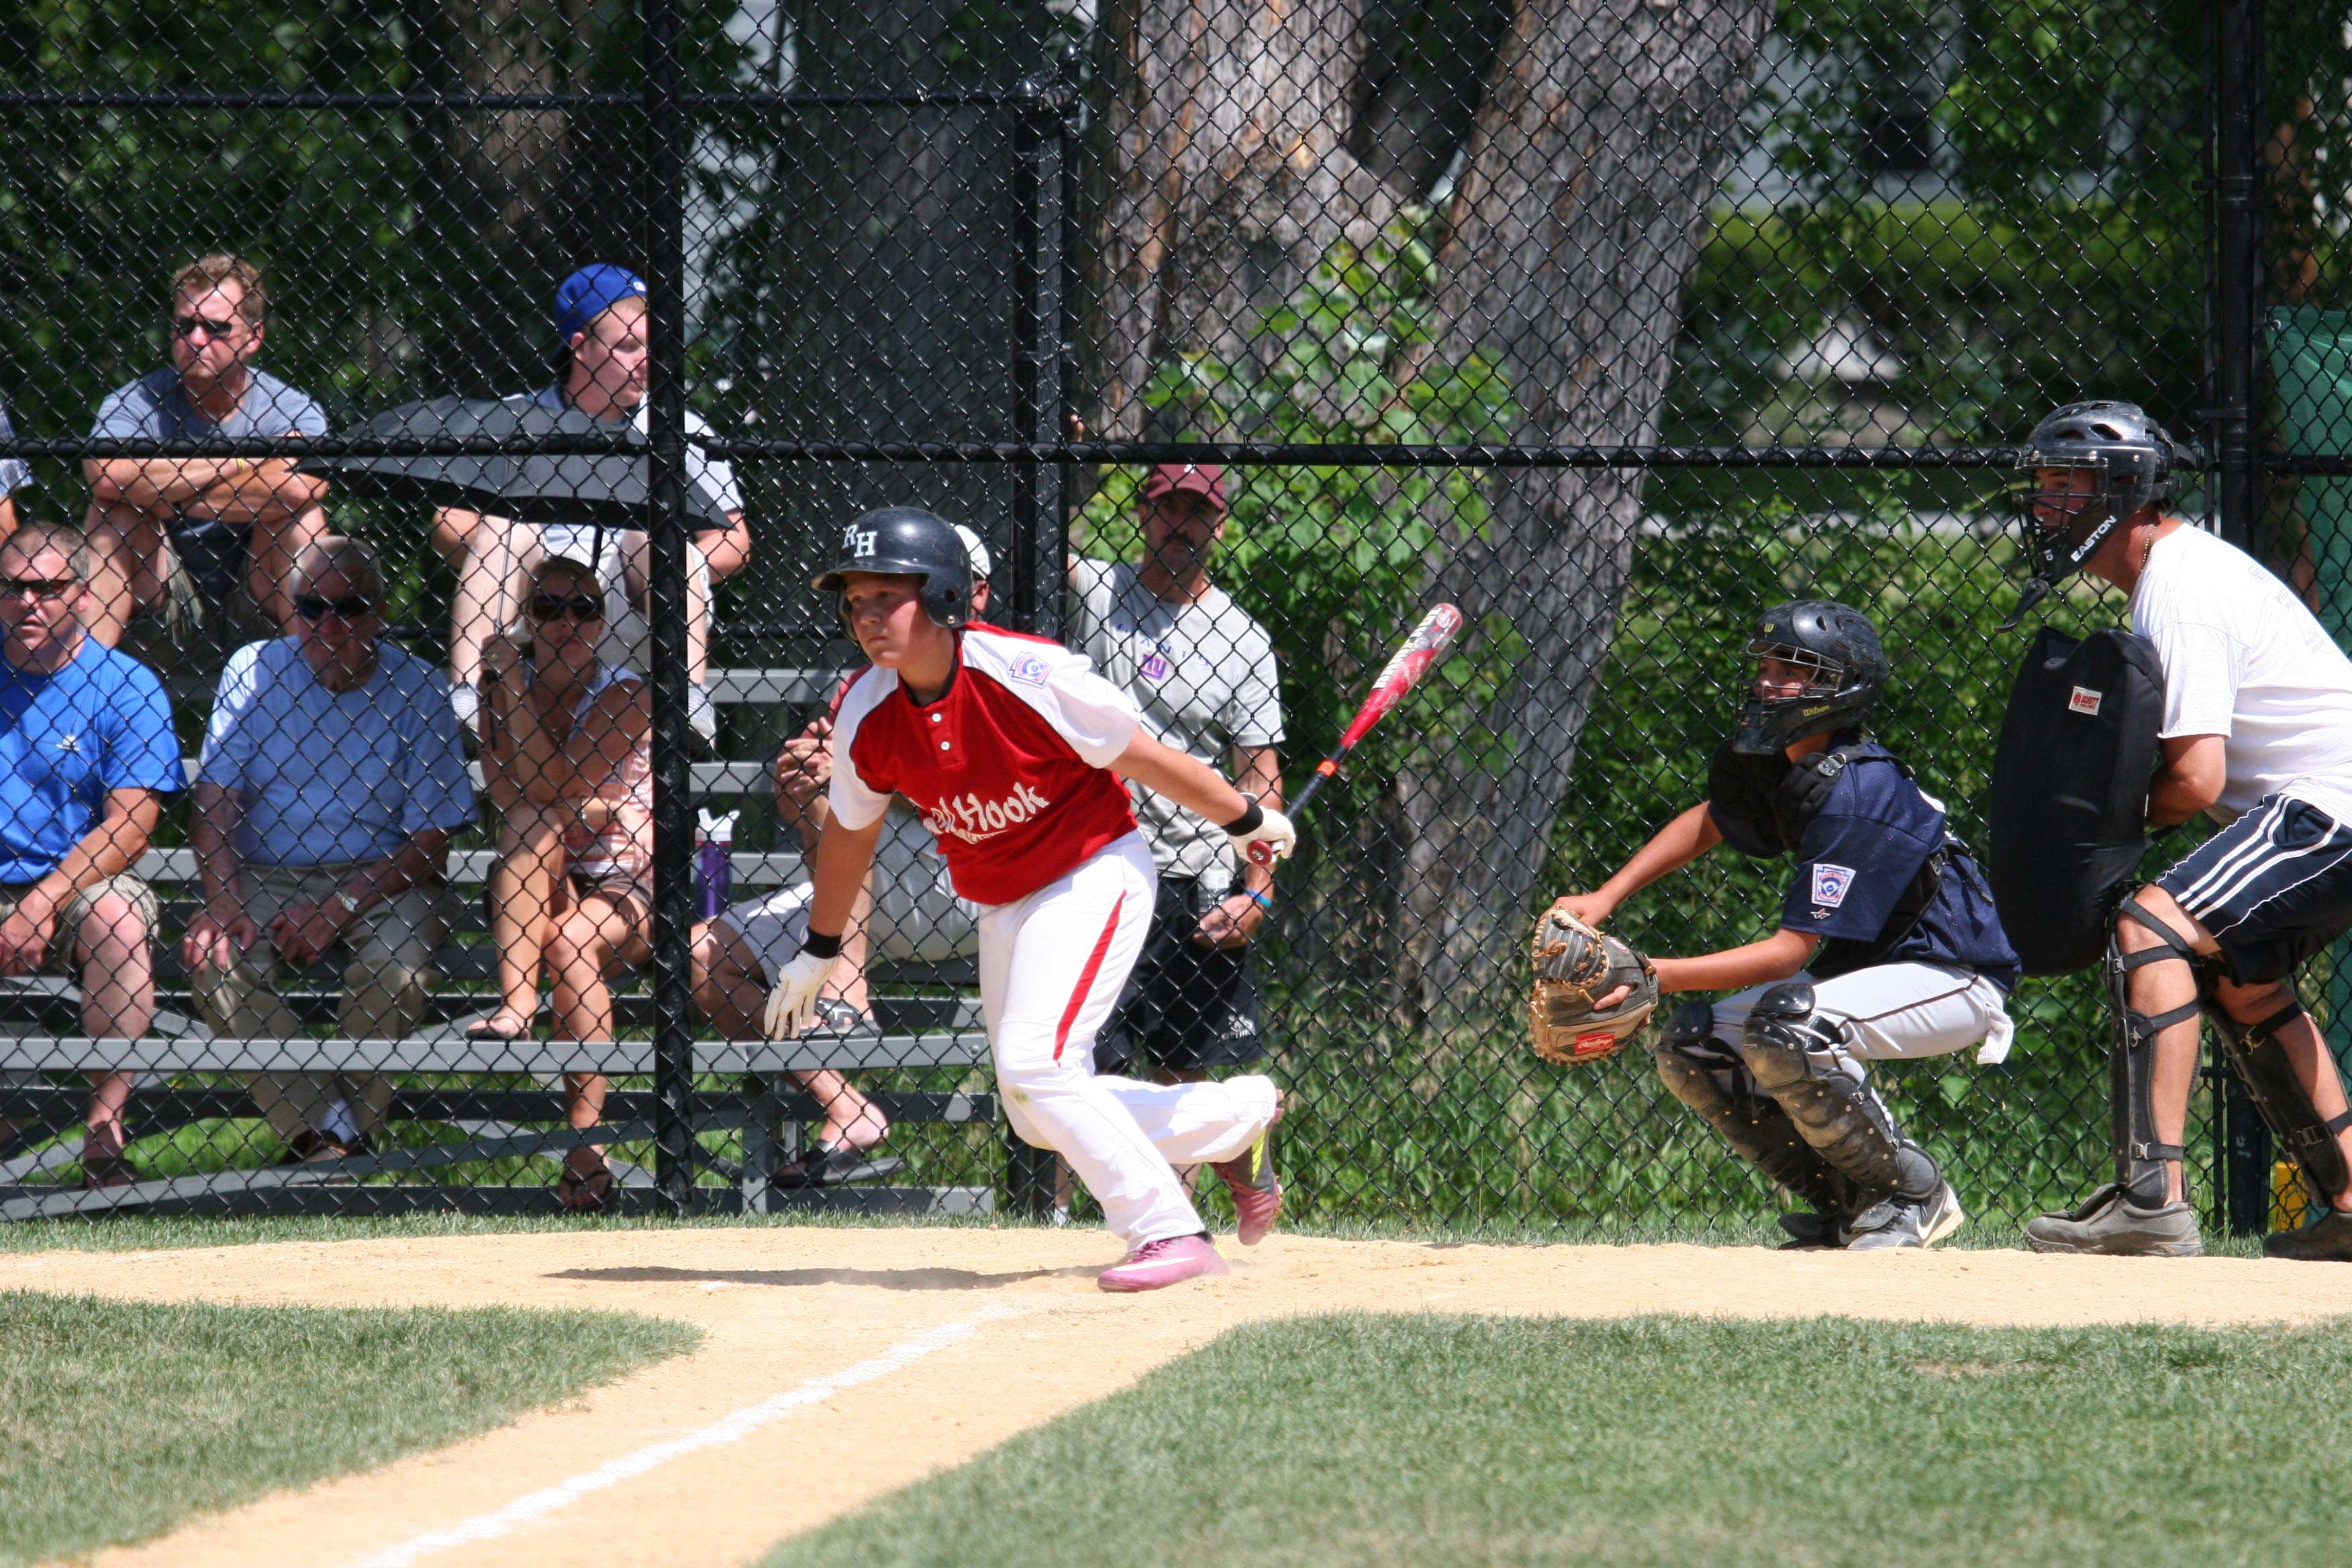 Eric Johnson, Red Hook Little League